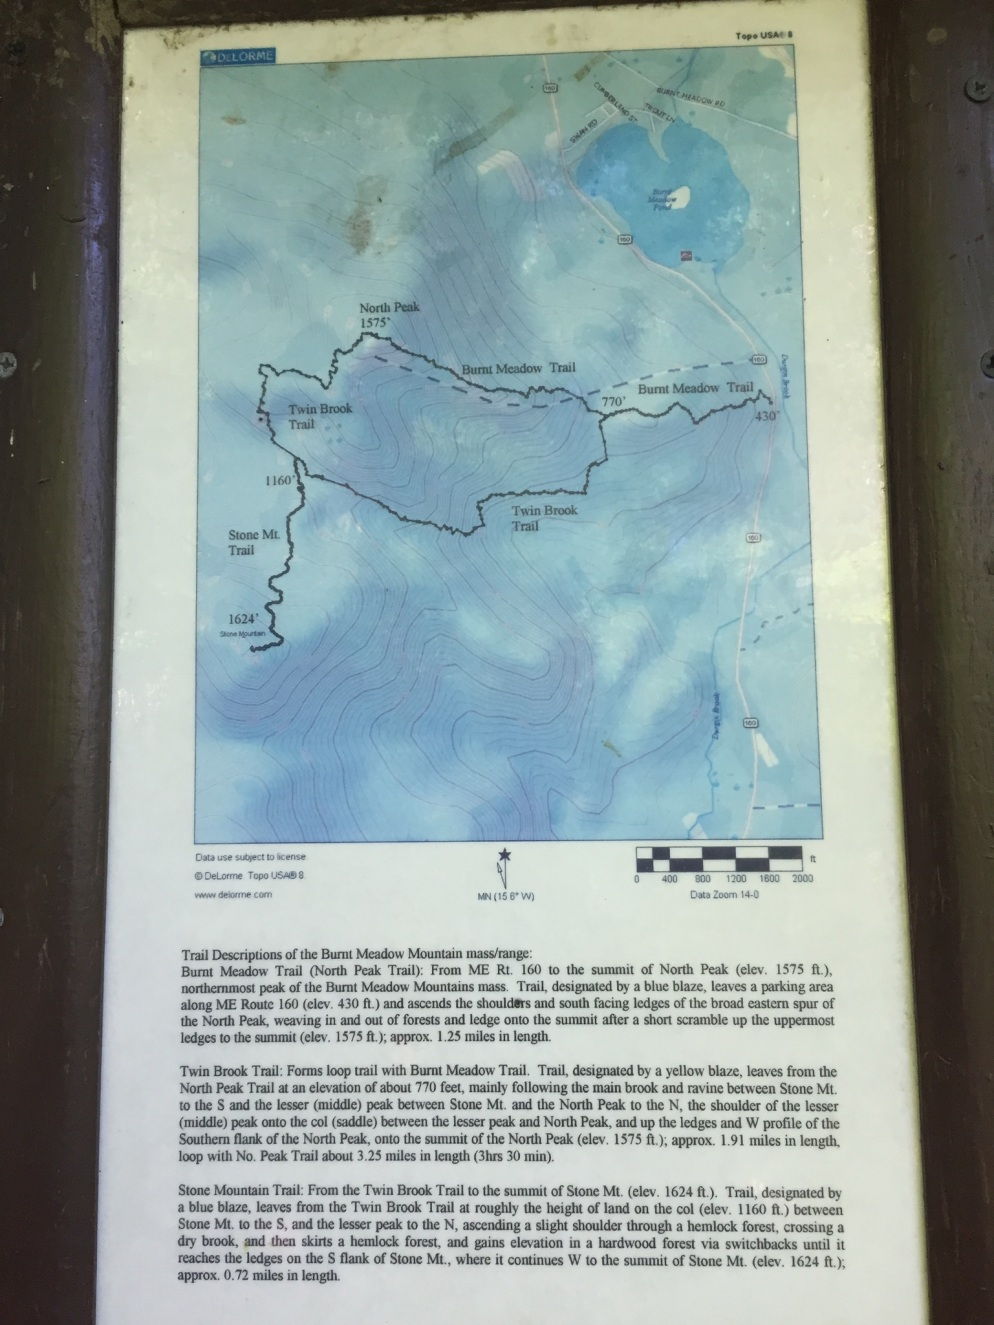 Map and trail description from trailhead kiosk along Rte 160 in Brownfield